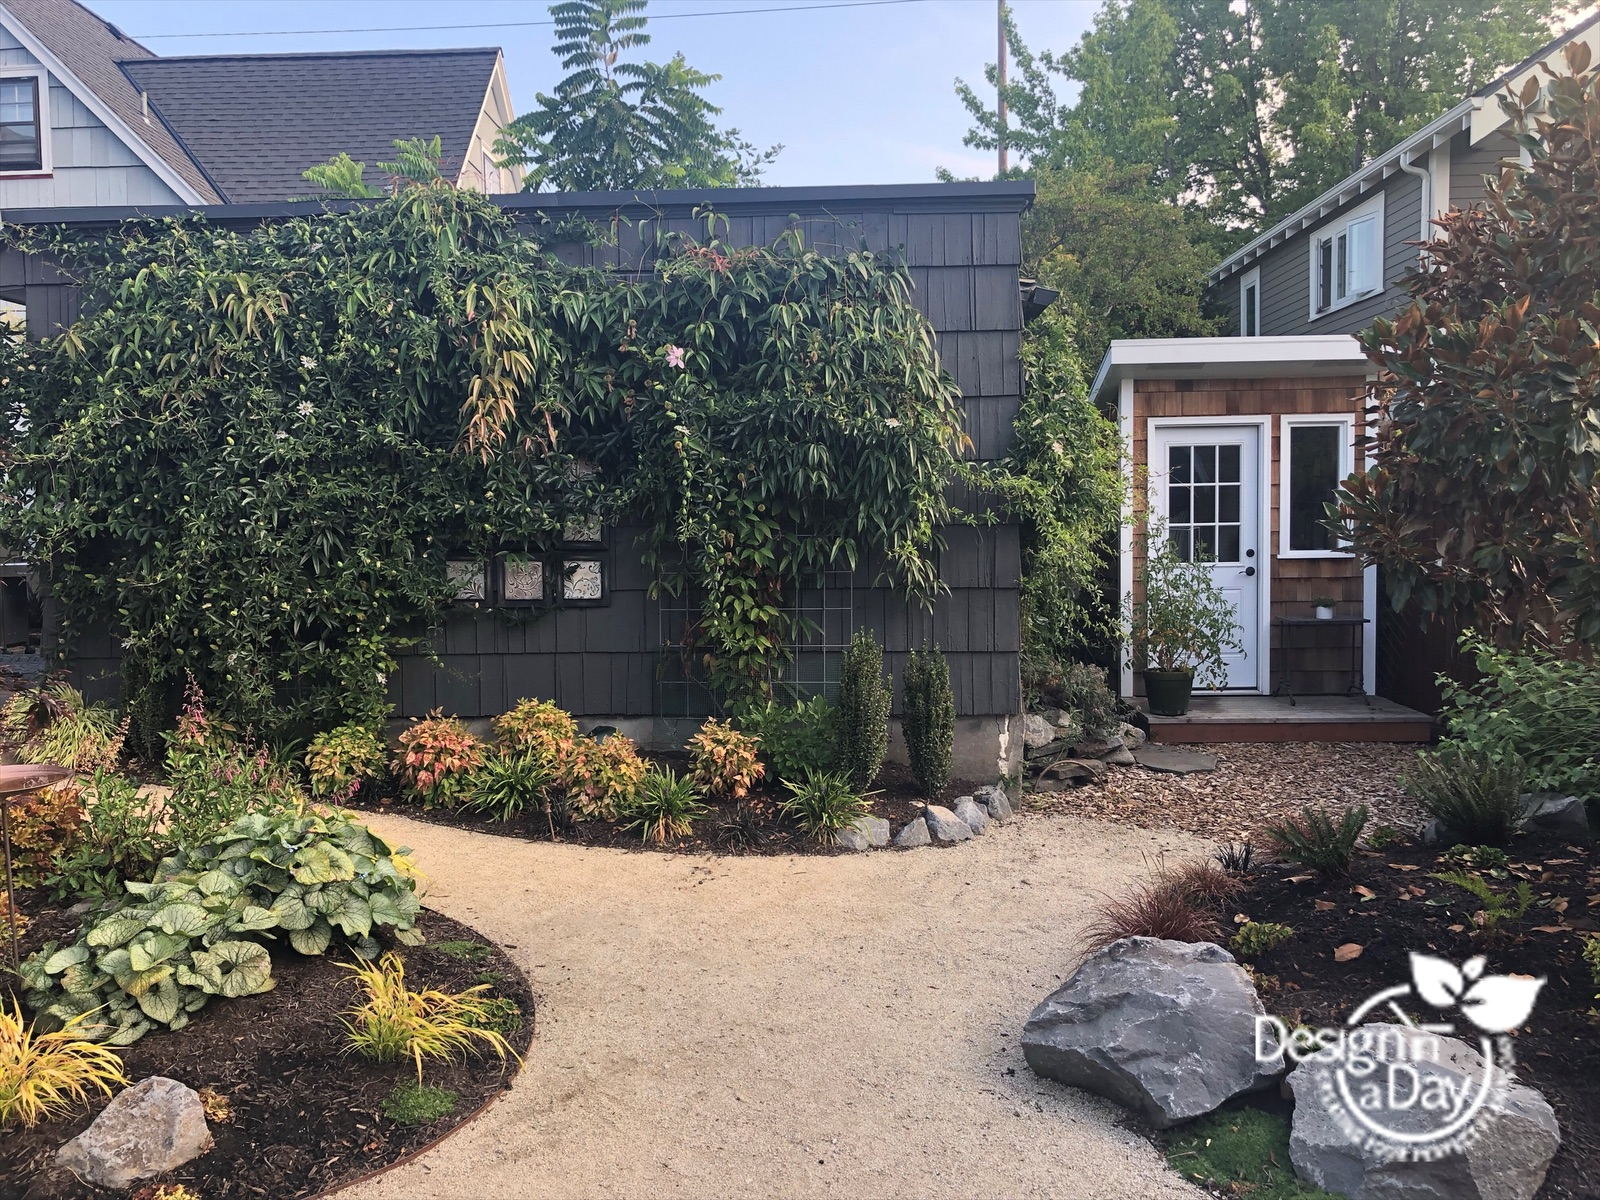 Outdoor living landscaping with granite path and custom shed in Grant Park neighborhood.